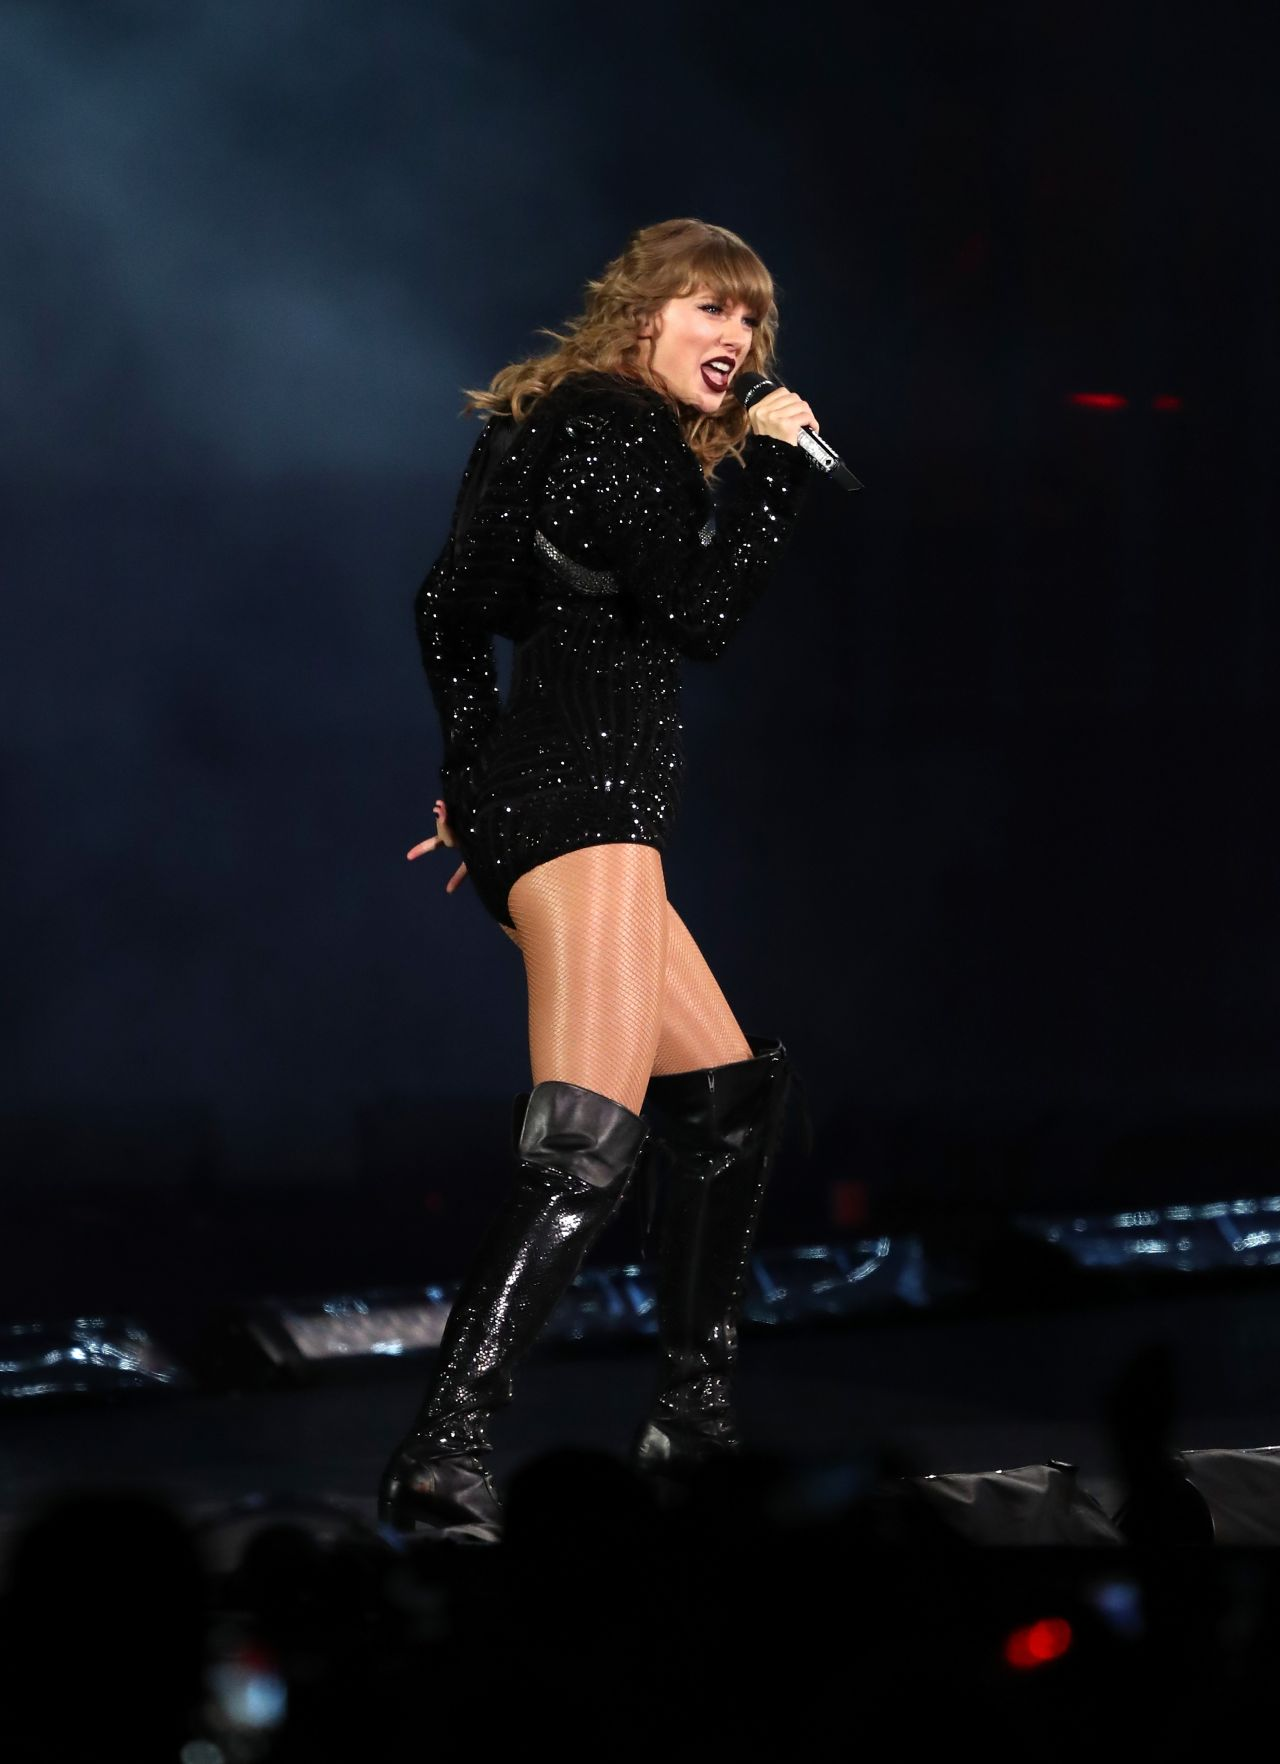 Taylor swift concert dates in Perth